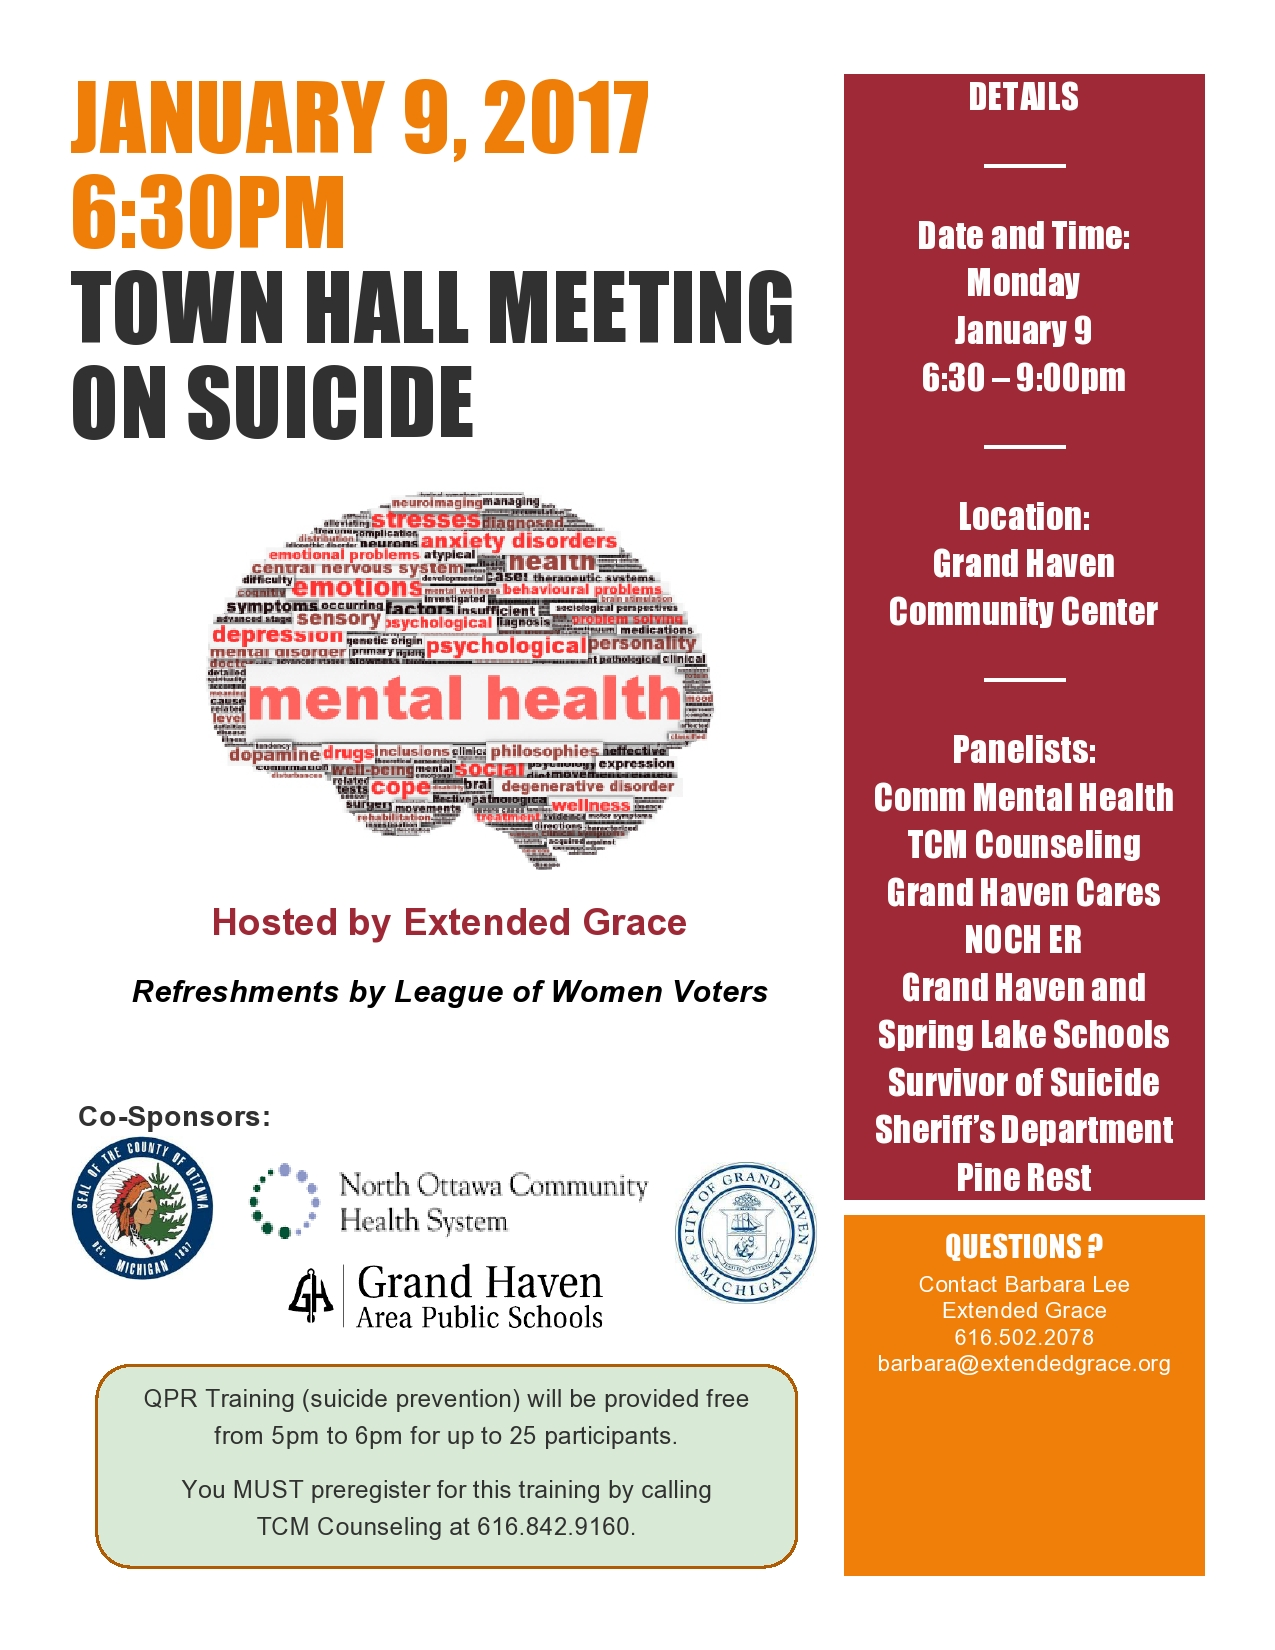 Town Hall Meeting on Suicide